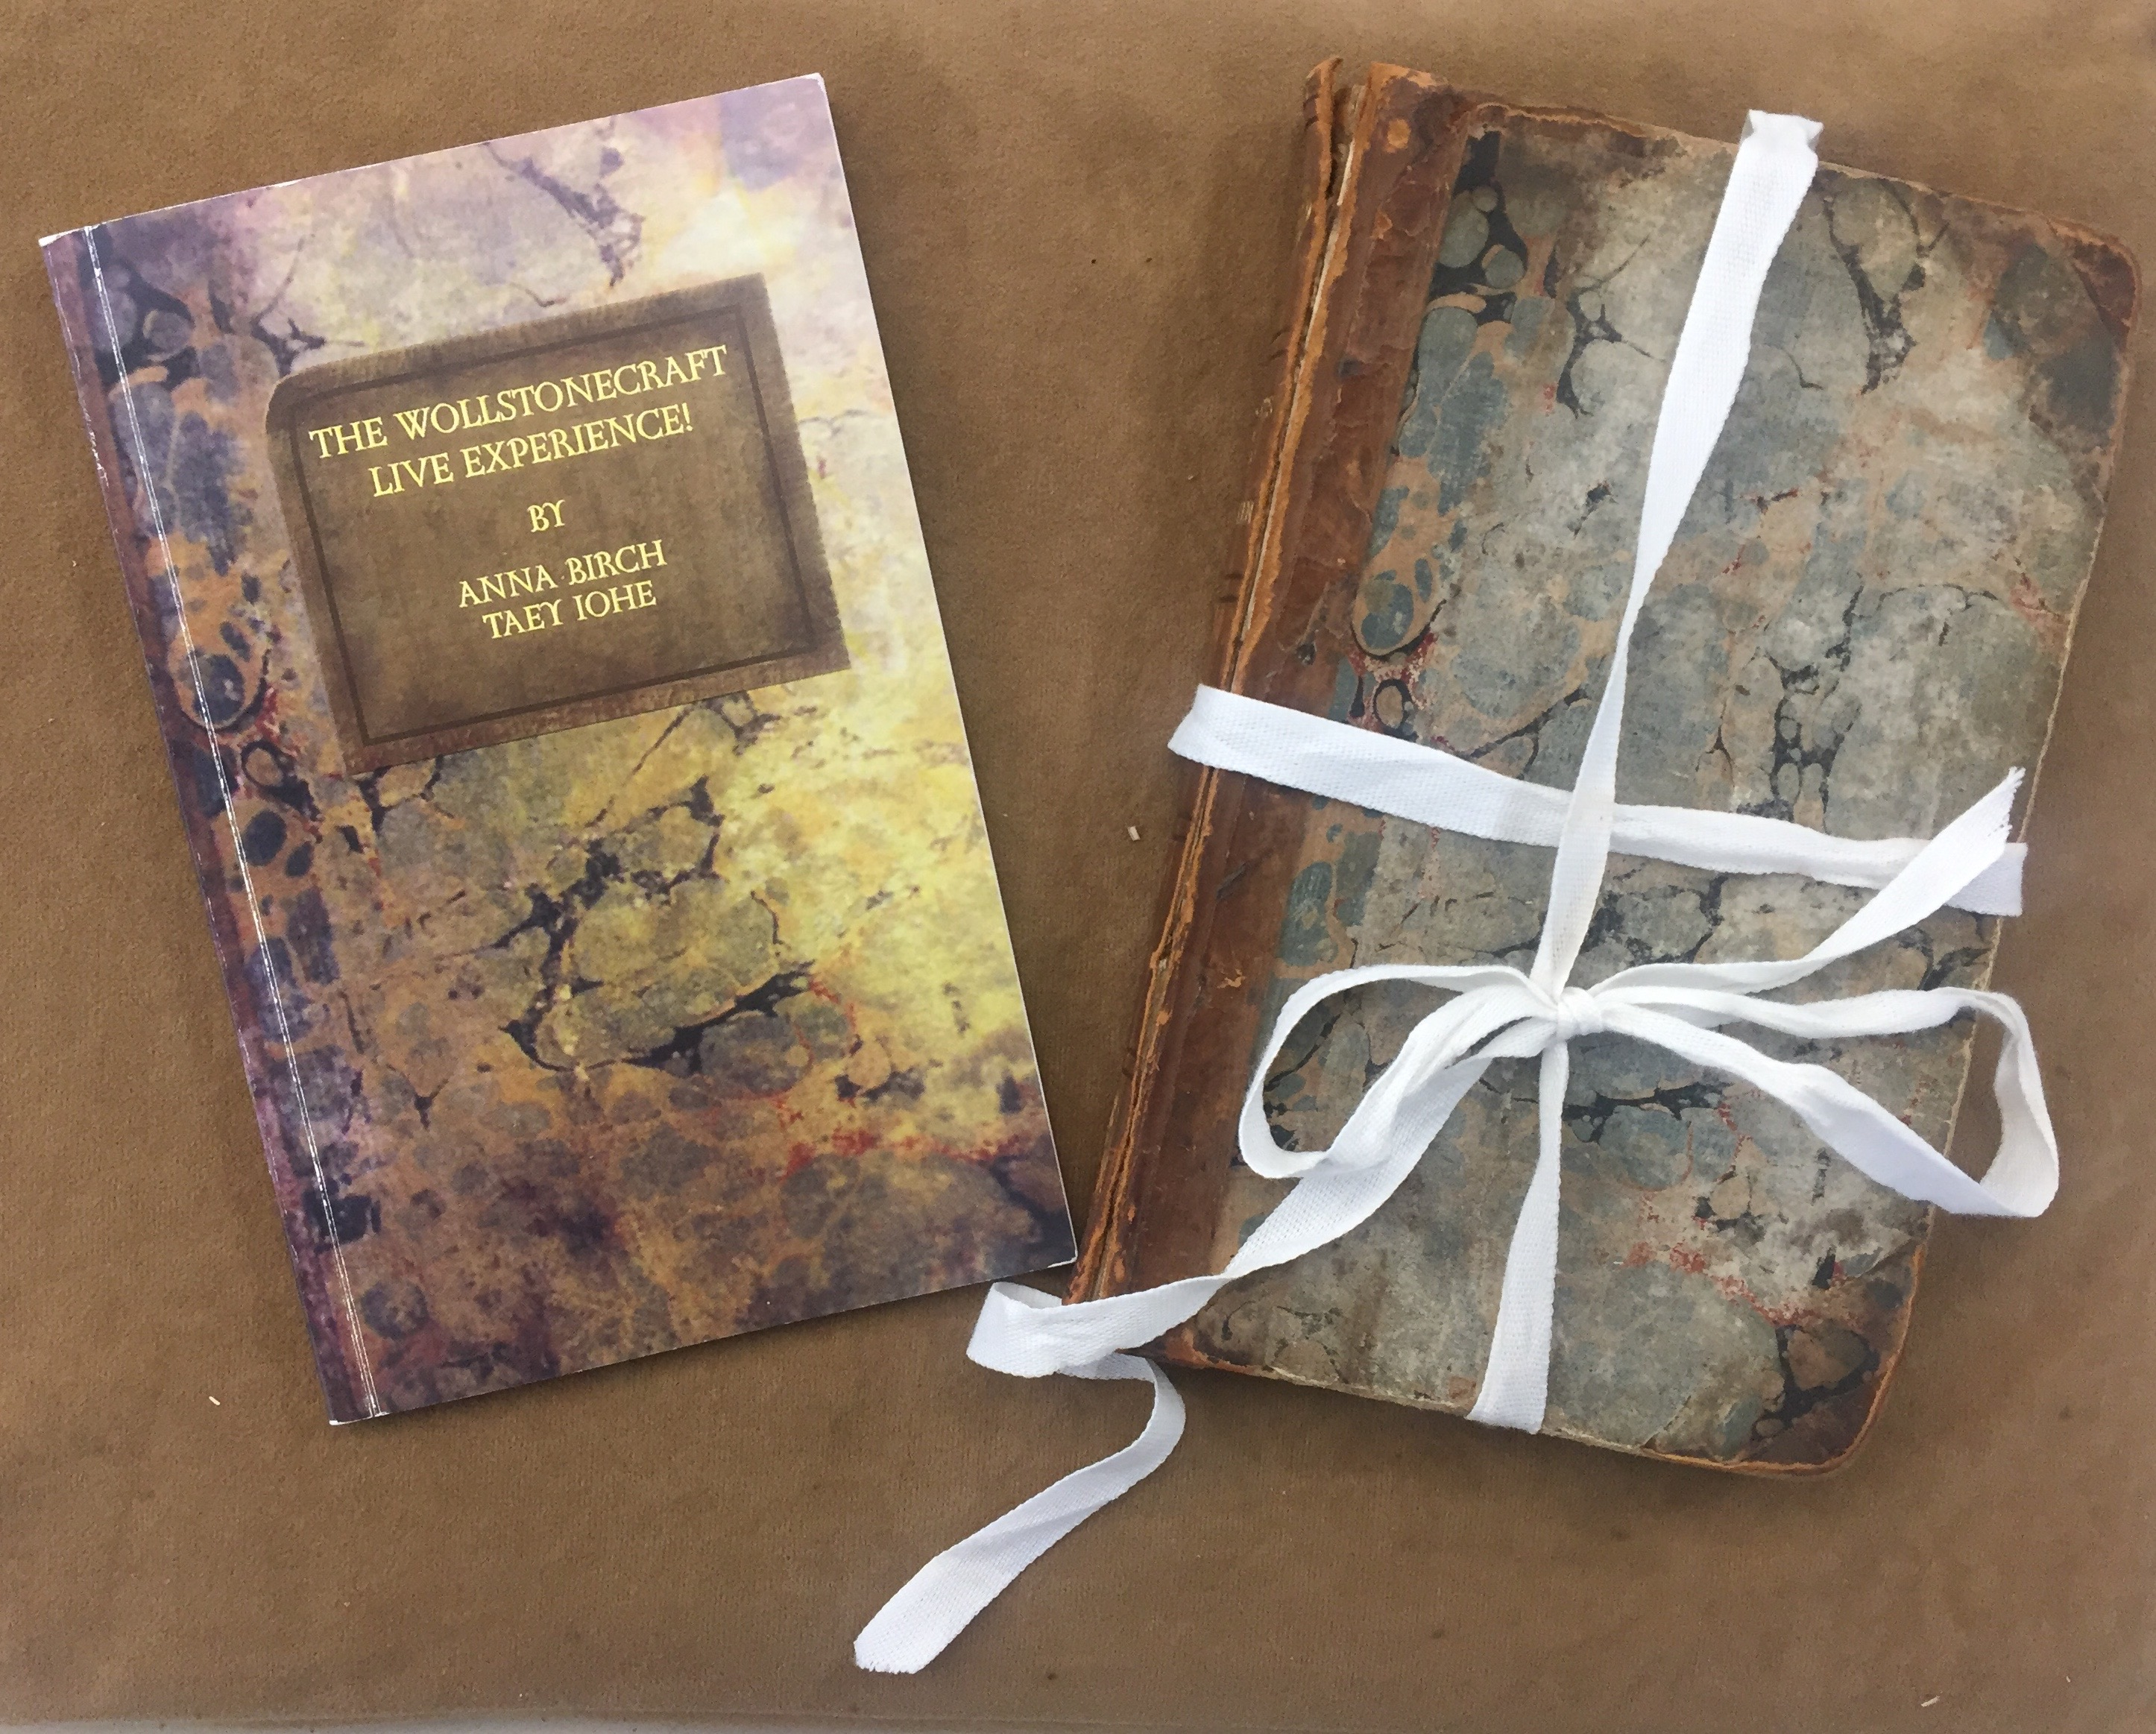 "'A Vindication of the Rights of Woman' ( 1792) paired with ""The Wollstonecraft Live Experience!' (2010) limited edition art book by Anna Birch and Taey Iohe (2010)"